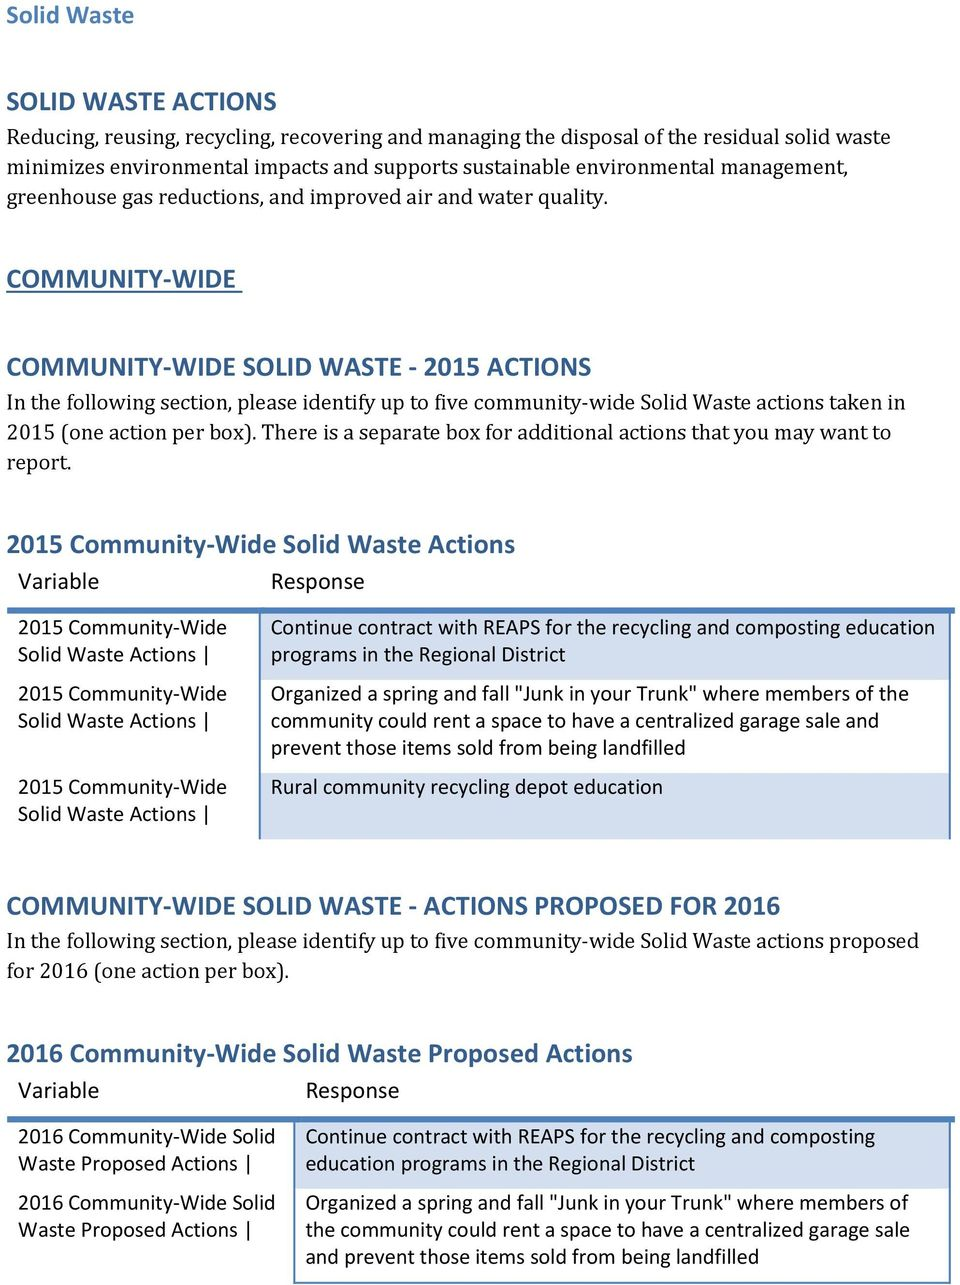 COMMUNITY-WIDE COMMUNITY-WIDE SOLID WASTE - 2015 ACTIONS In the following section, please identify up to five community-wide Solid Waste actions taken in 2015 (one action per box).